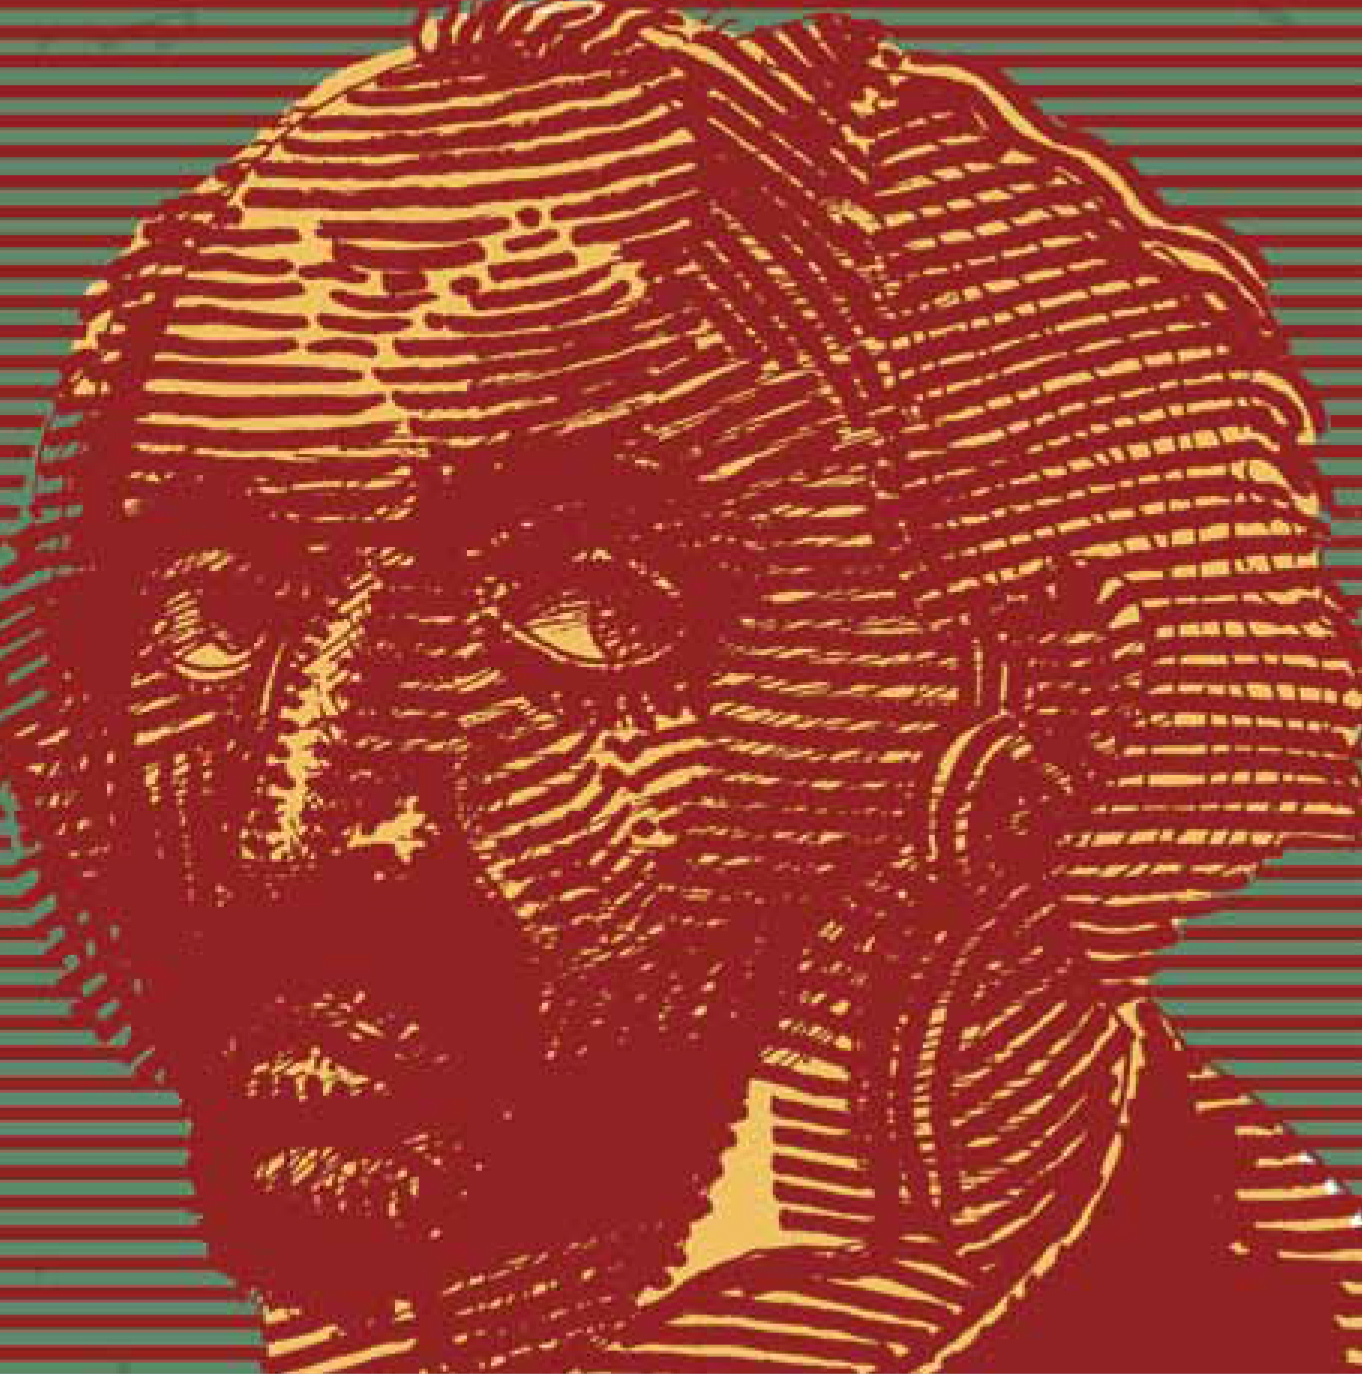 LEAR-Shakespeare-Portrait-Milton-Glaser